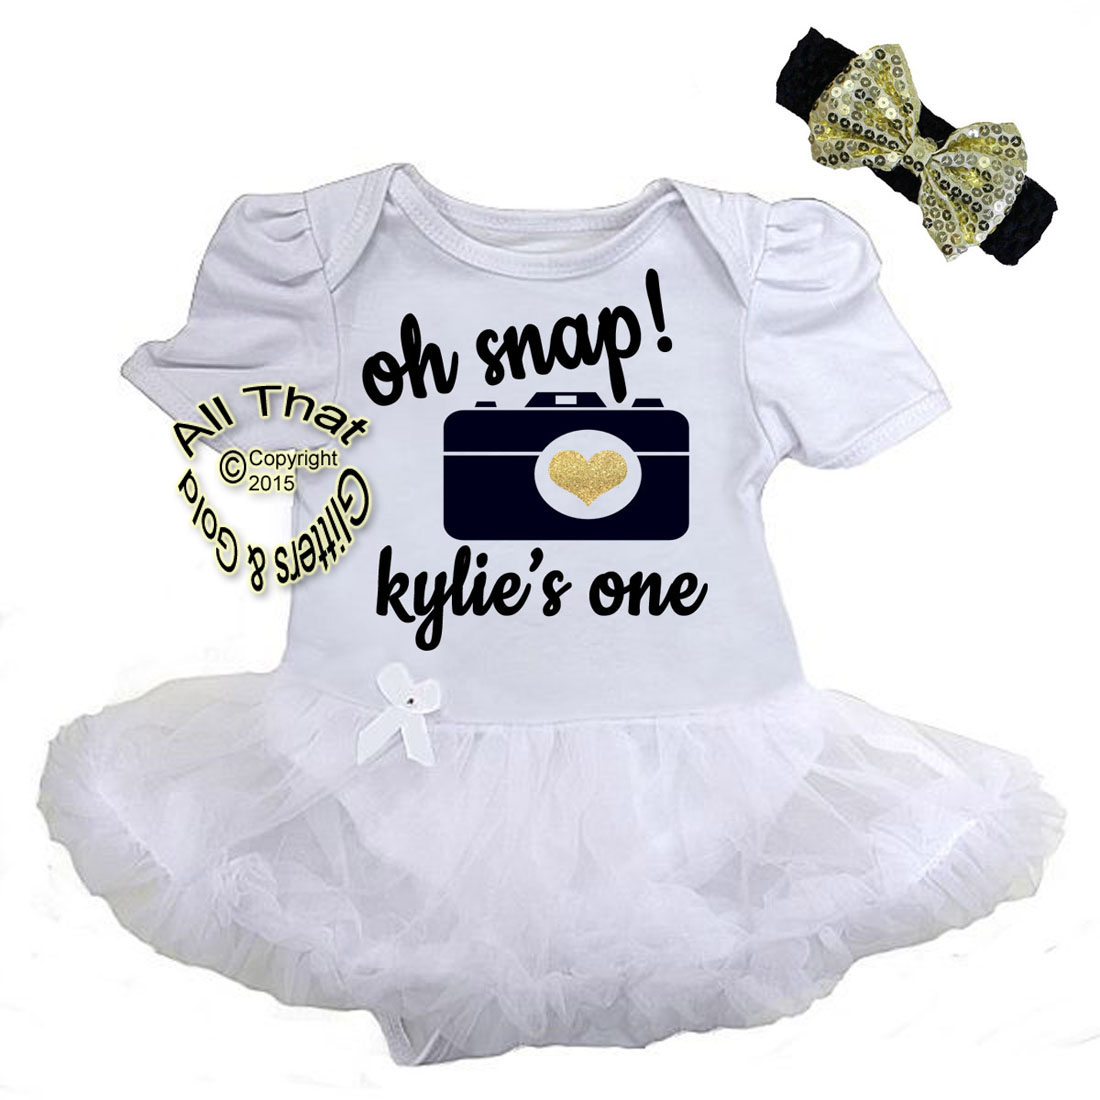 Personalized 2 Piece Black And Gold Glitter Cute Outfits For Baby Girl First Birthday